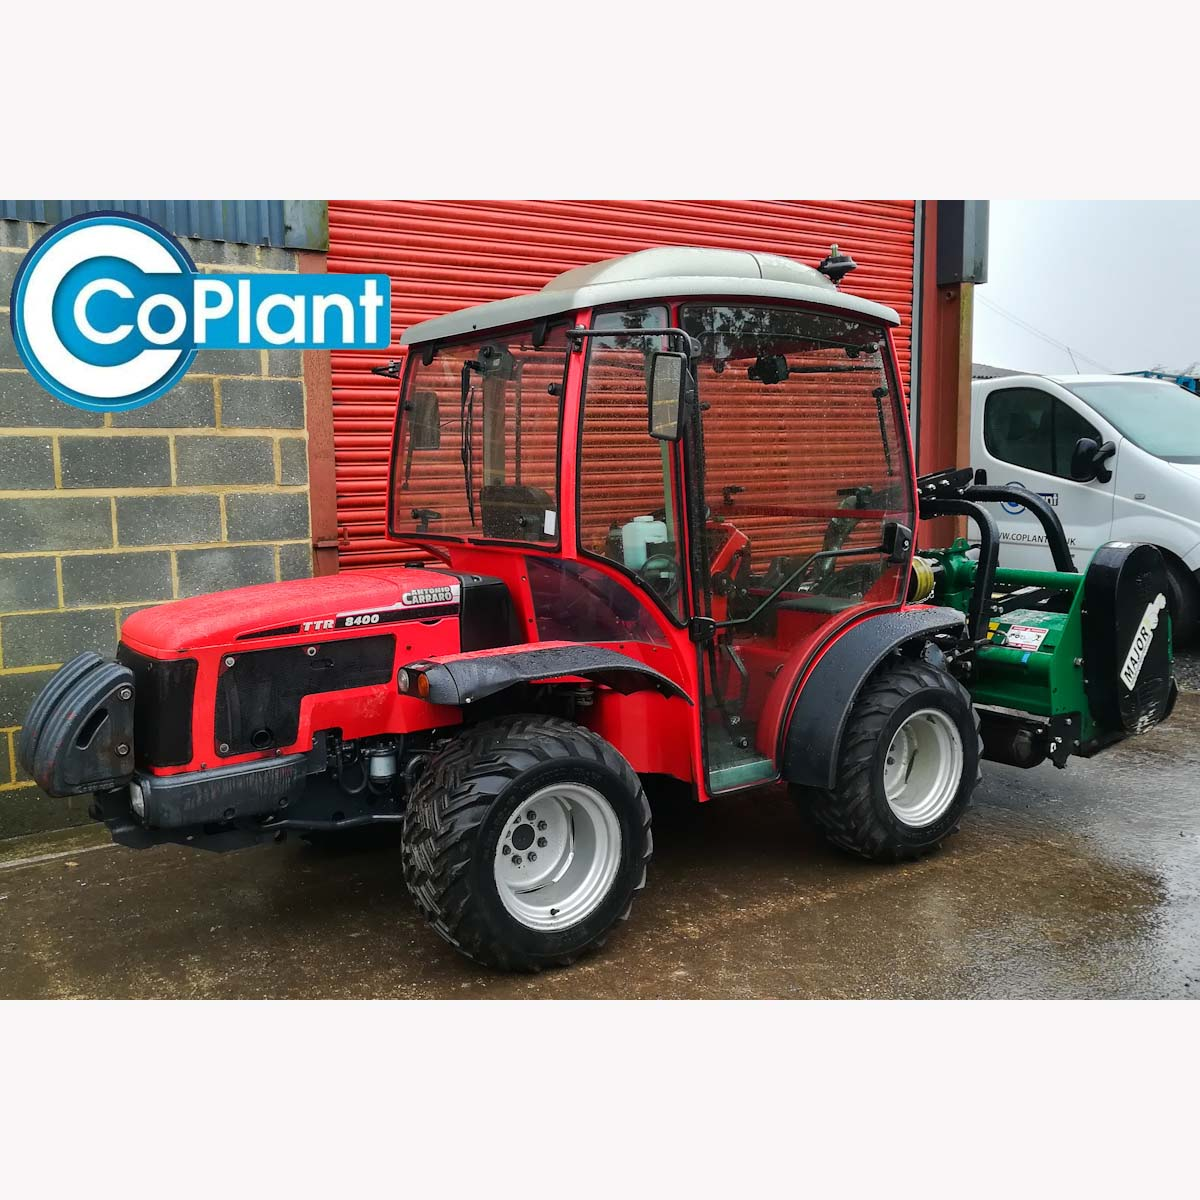 Antonio Carraro 8400 TTR Tractor and Mower from CoPlant